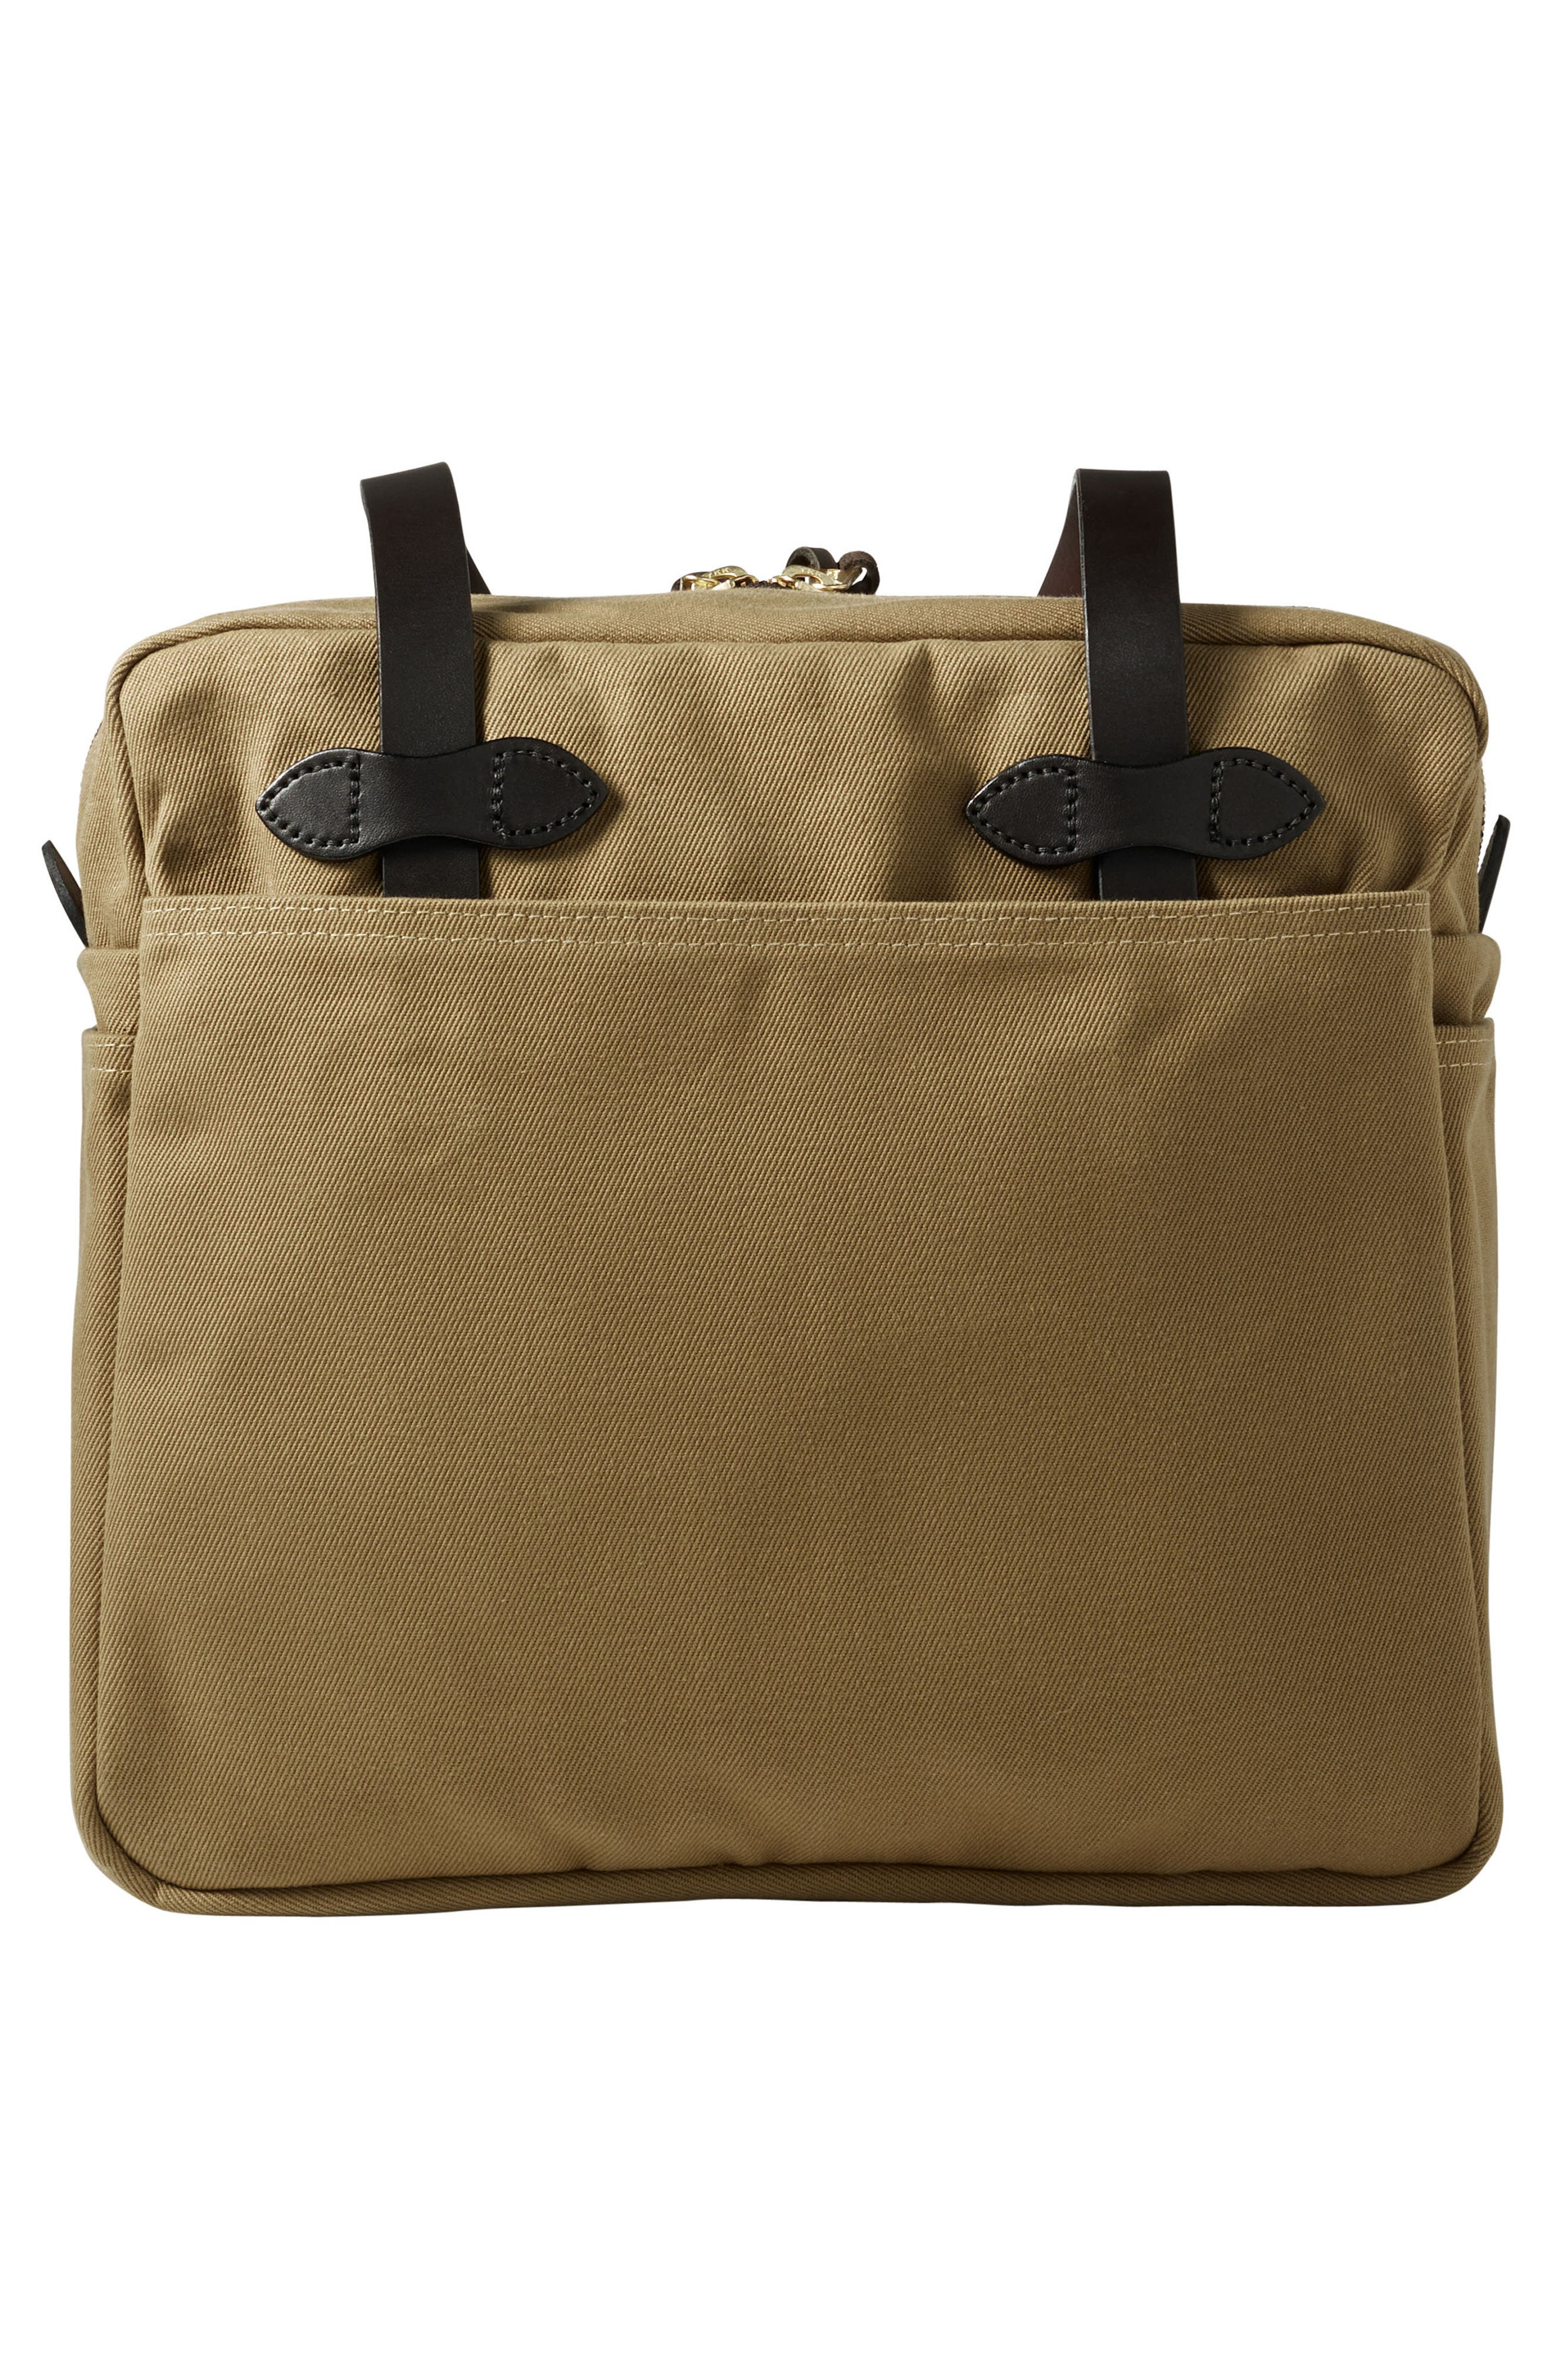 Rugged Twill Zip Tote Bag,                             Alternate thumbnail 2, color,                             242